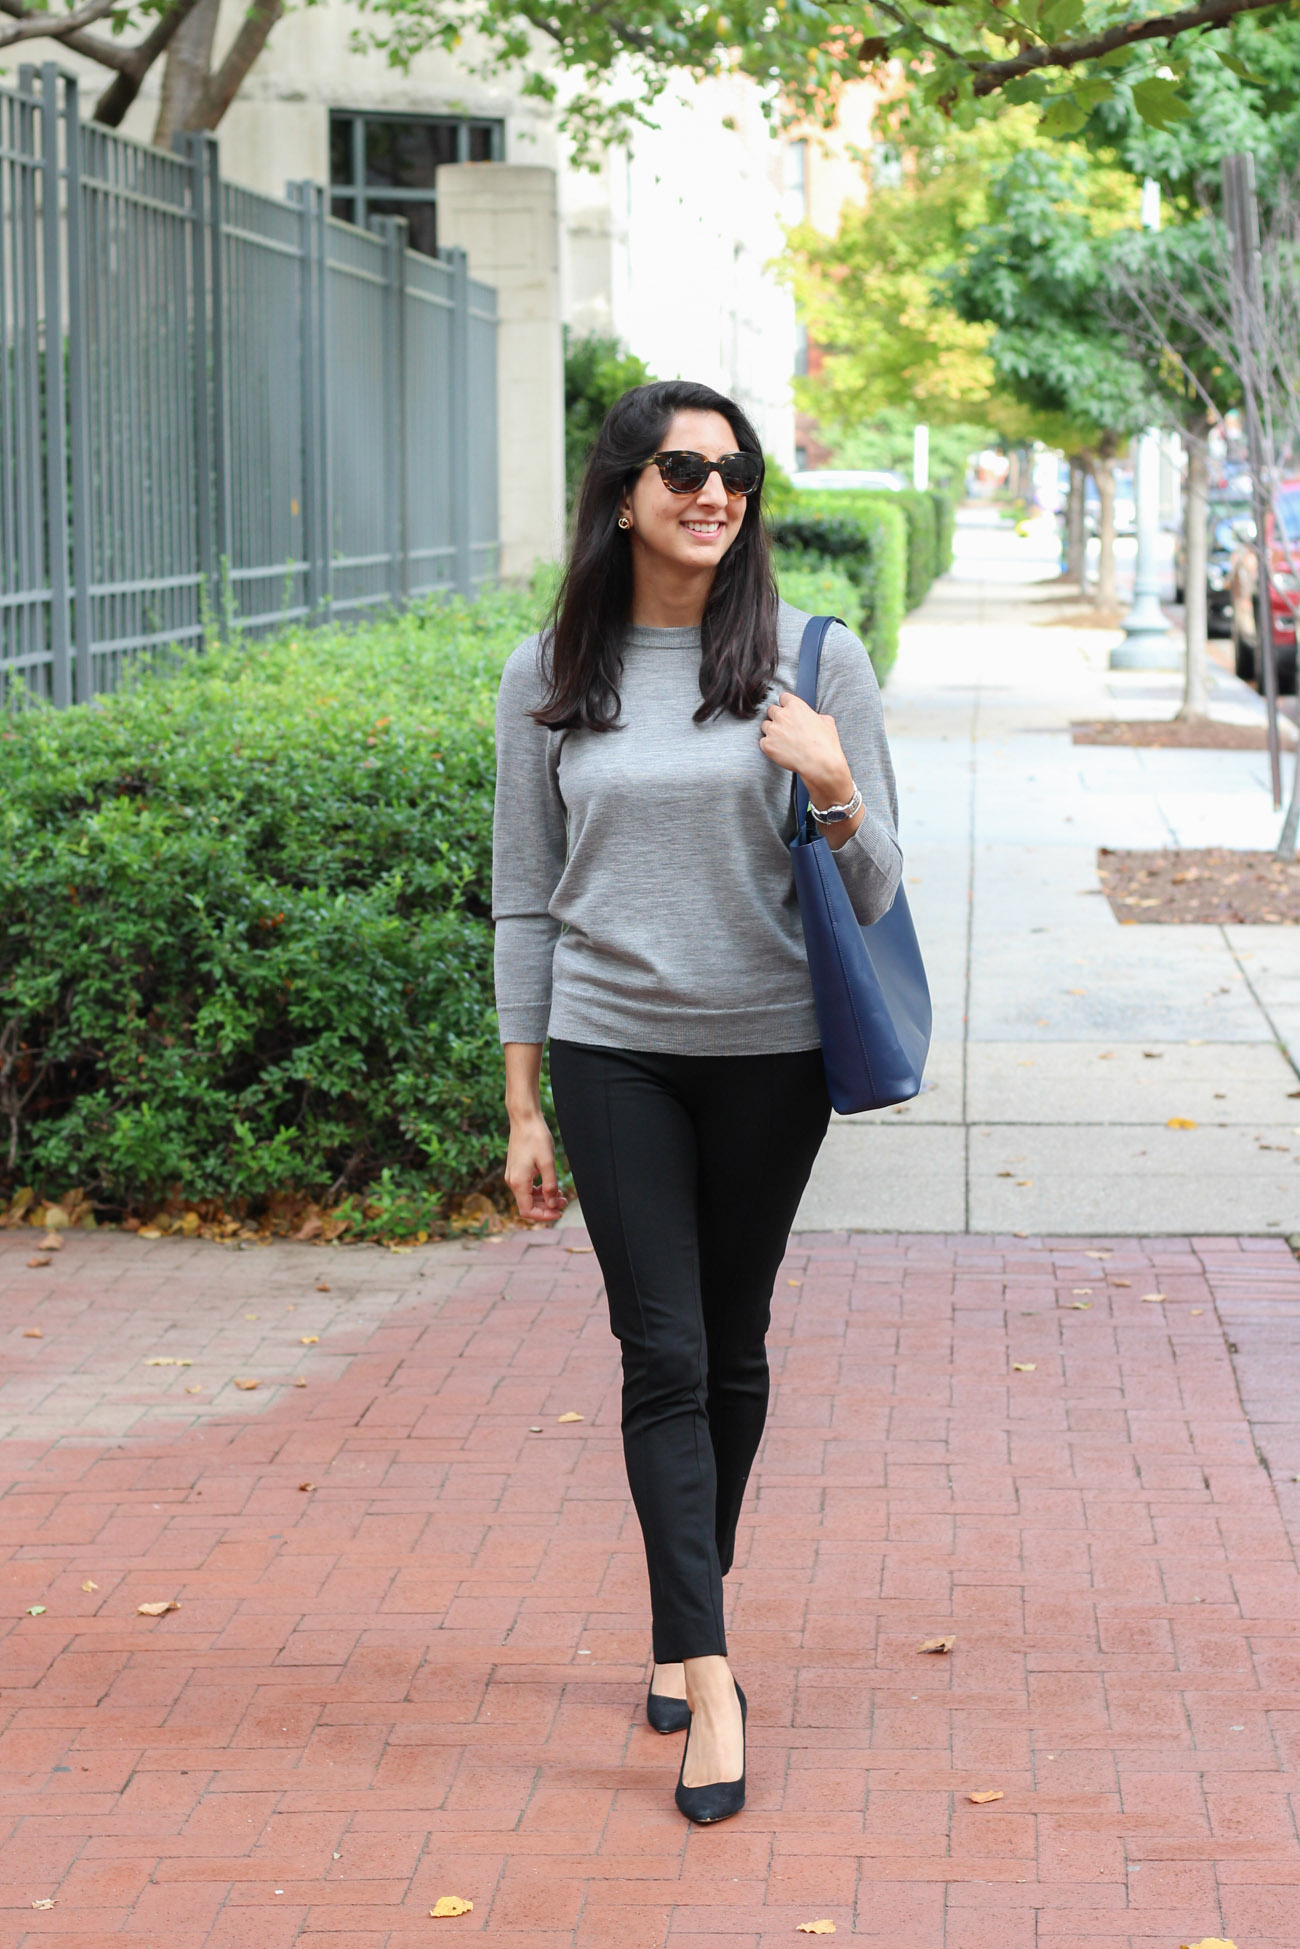 Everlane workwear outfit - Everlane Day Market Tote styled by popular Washington DC style blogger, Monica Dutia